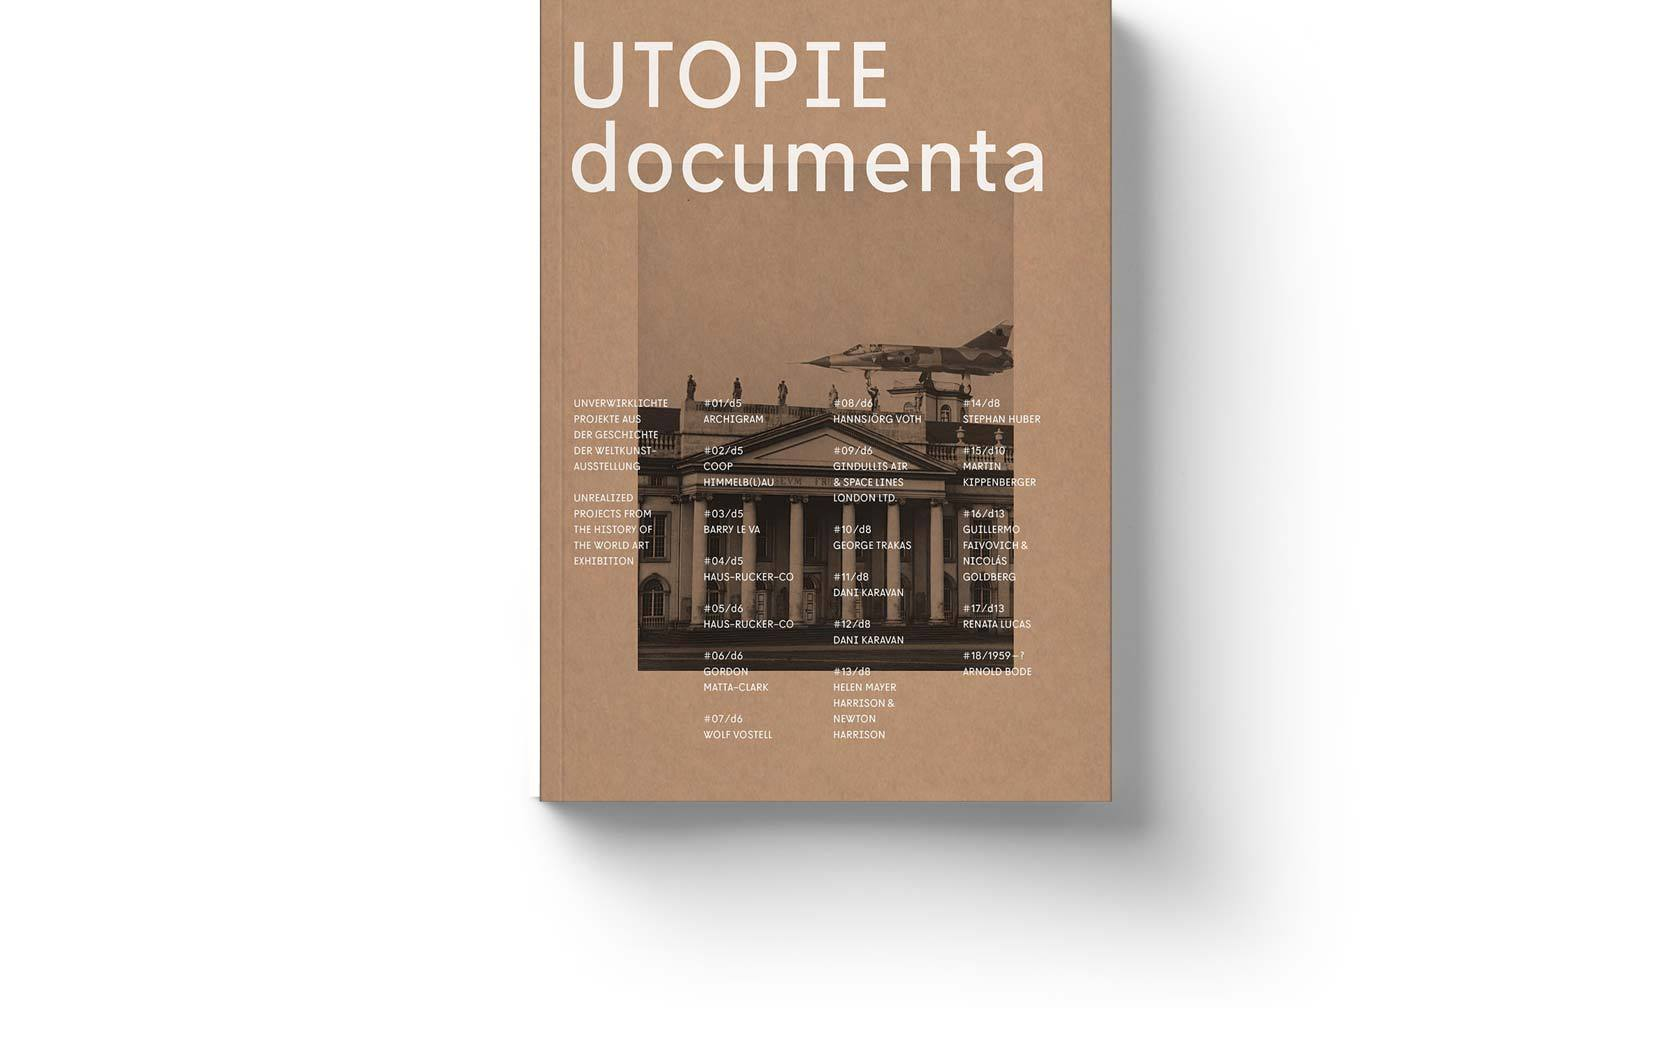 UTOPIE documenta Publication